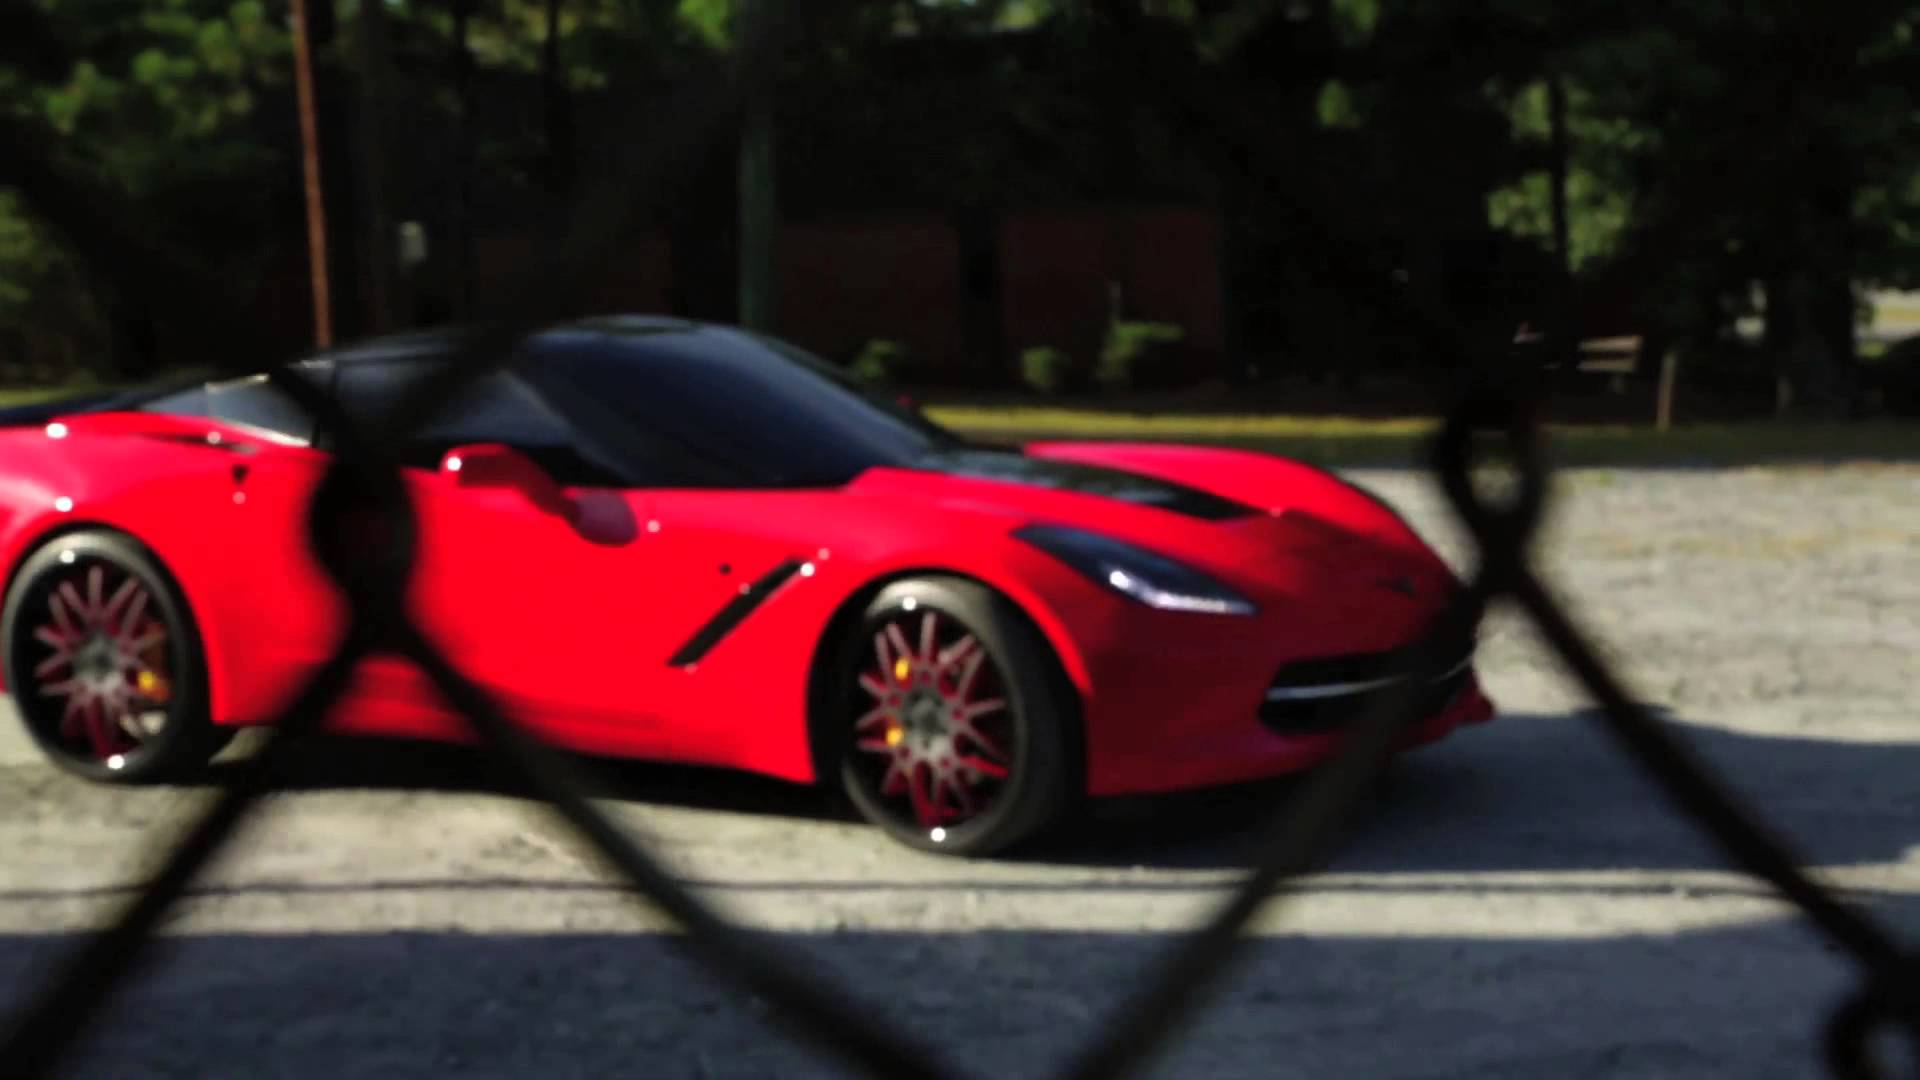 2015 Forgiato Corvette Stingray By Roadshow International